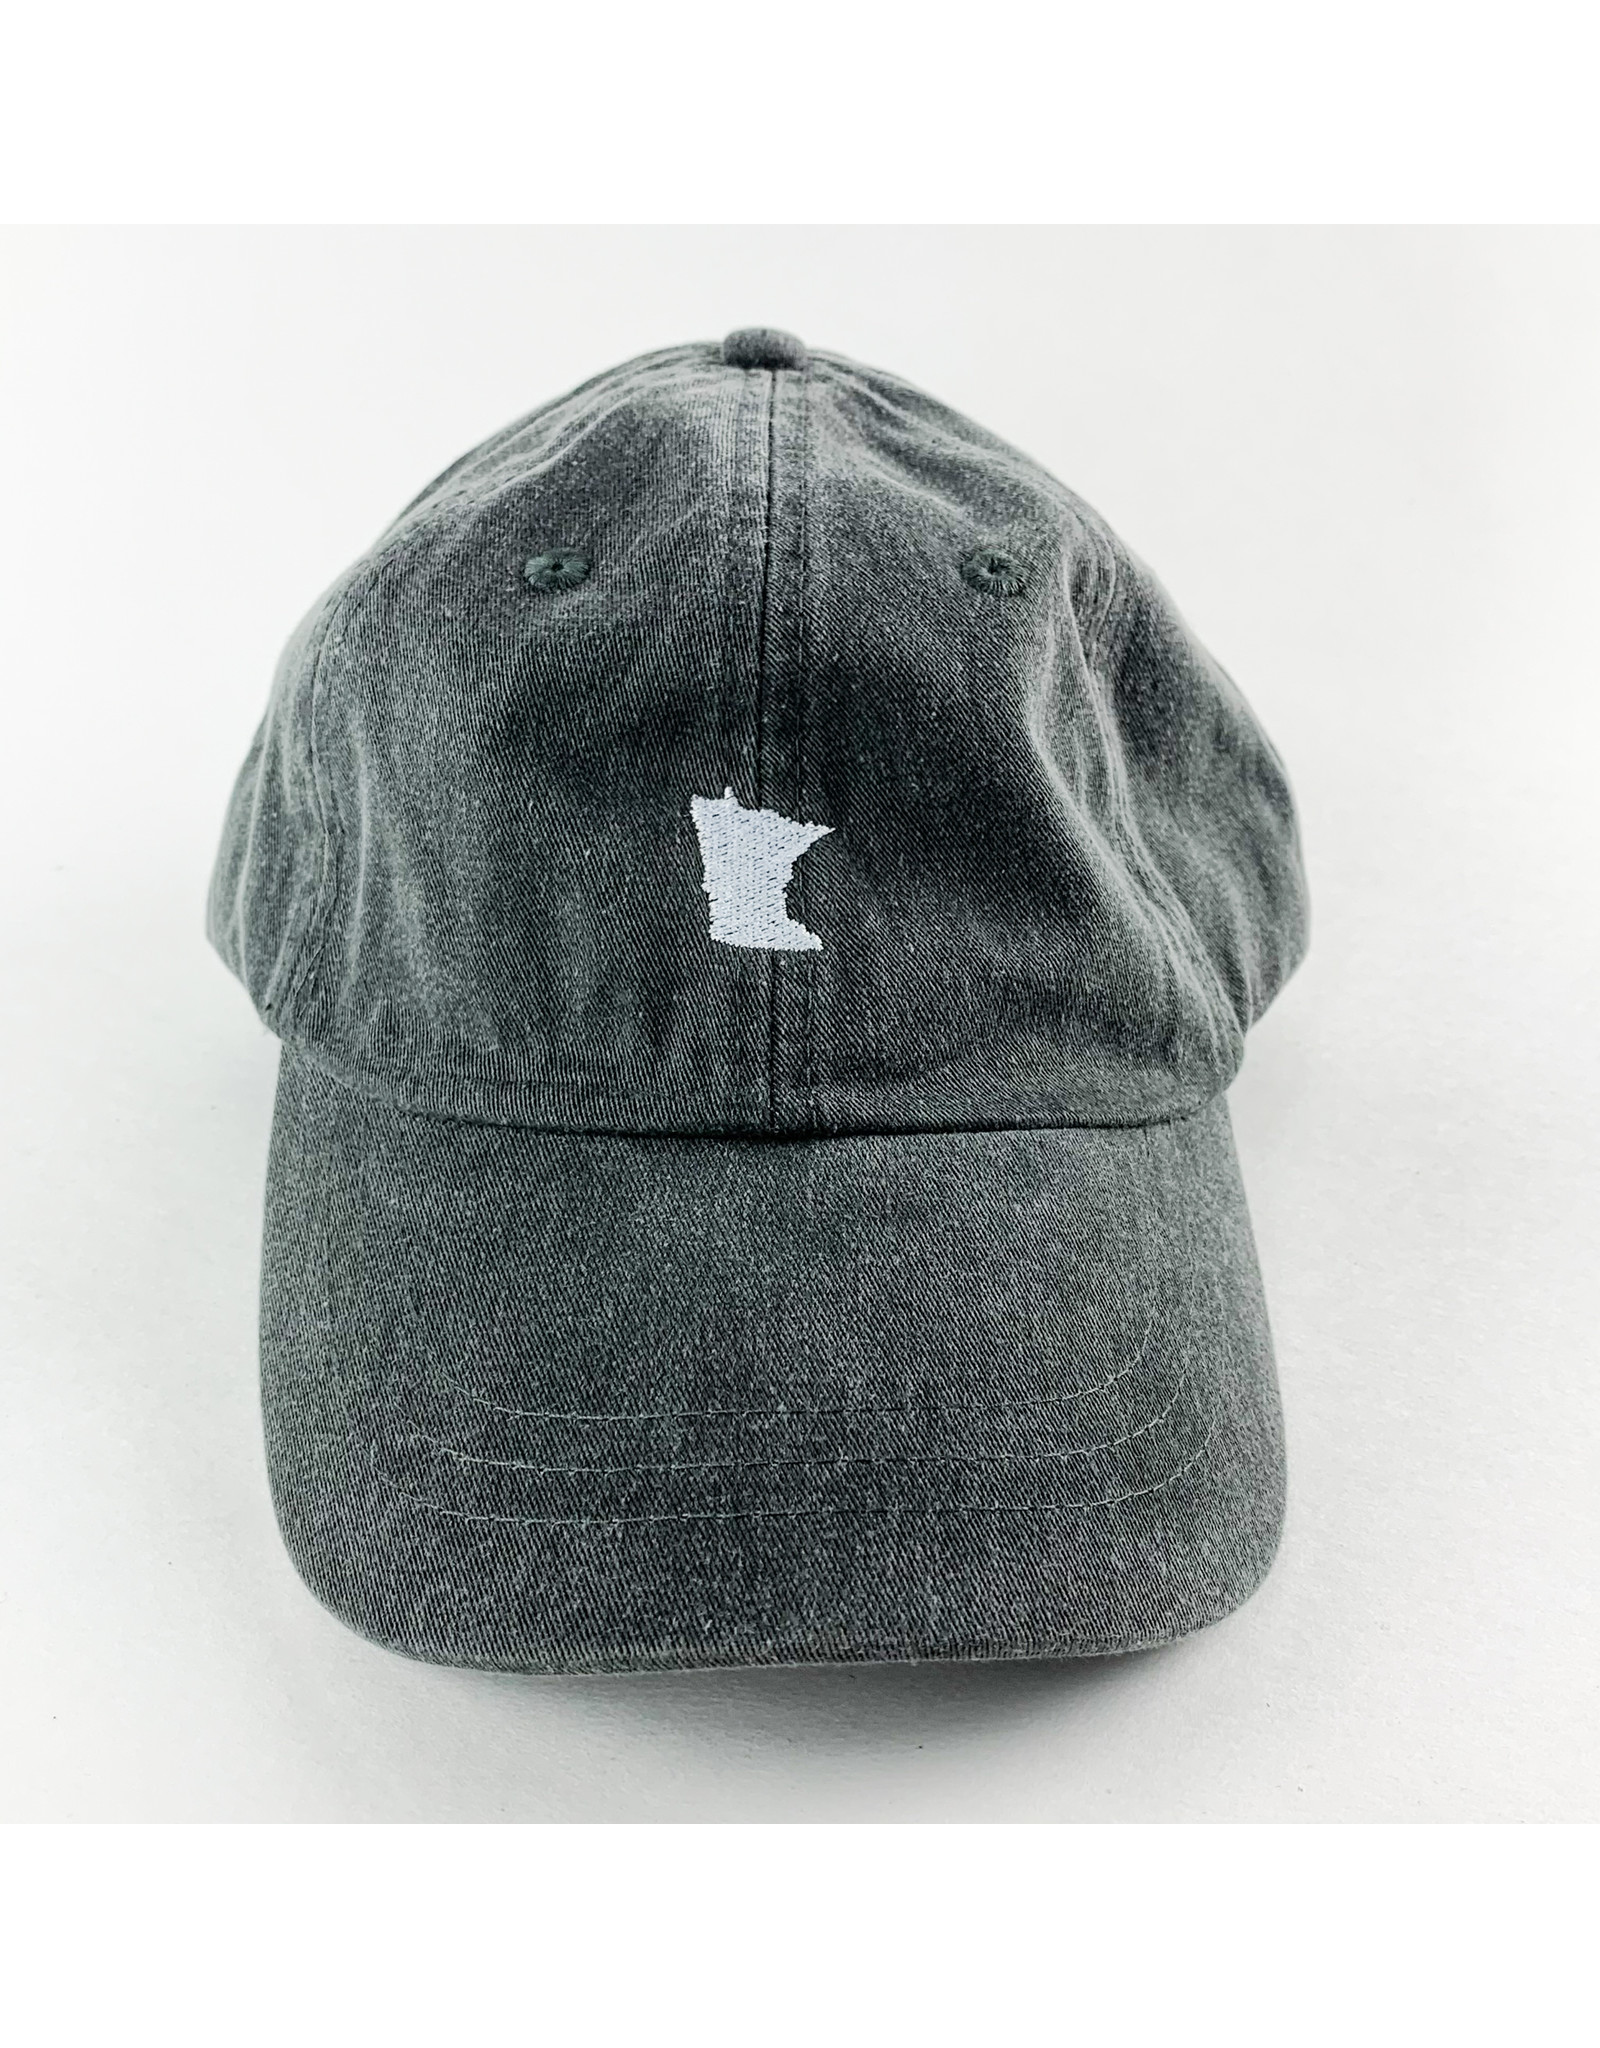 Mill City Made LLC MN Hat Charcoal